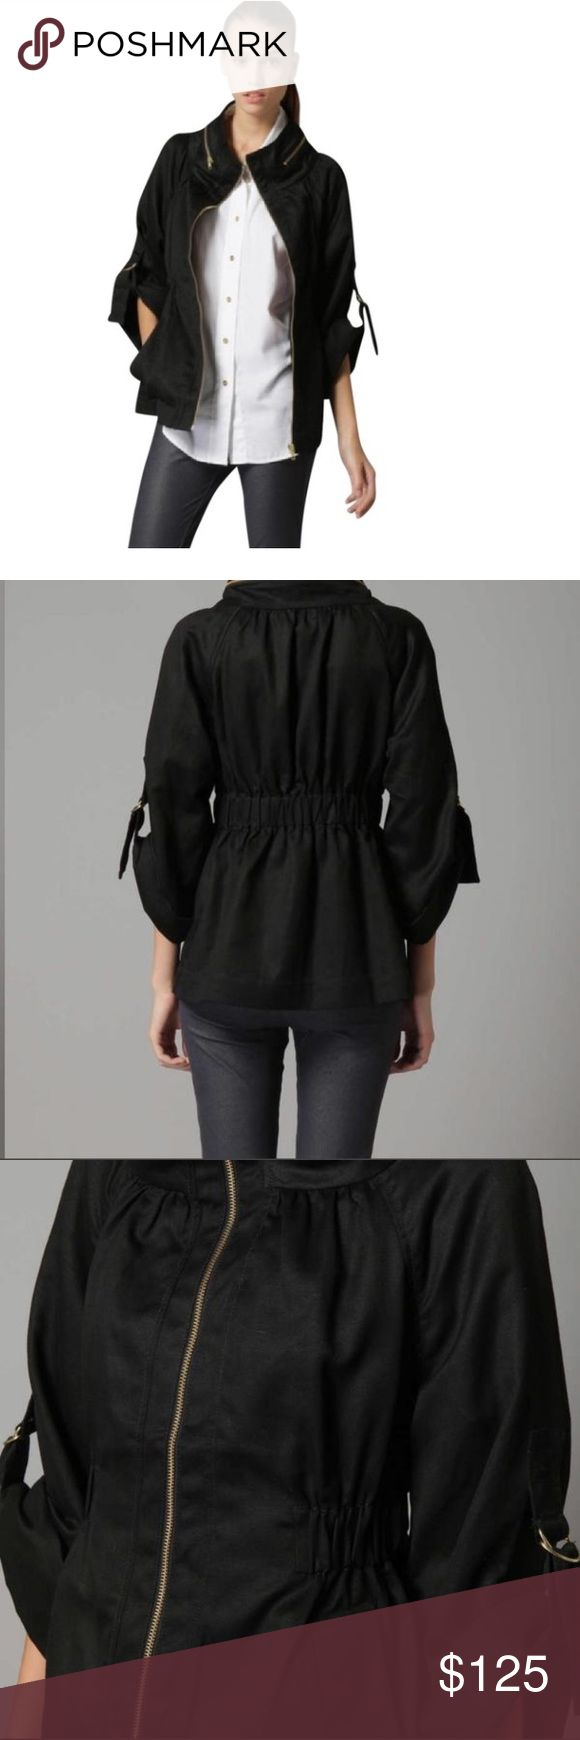 French Connection Underground Twill Jacket Perfect go-to jacket with its elastic band and hidden hood. Three quarter sleeves when drawn up, but can also be worn long sleeve. French Connection Jackets & Coats